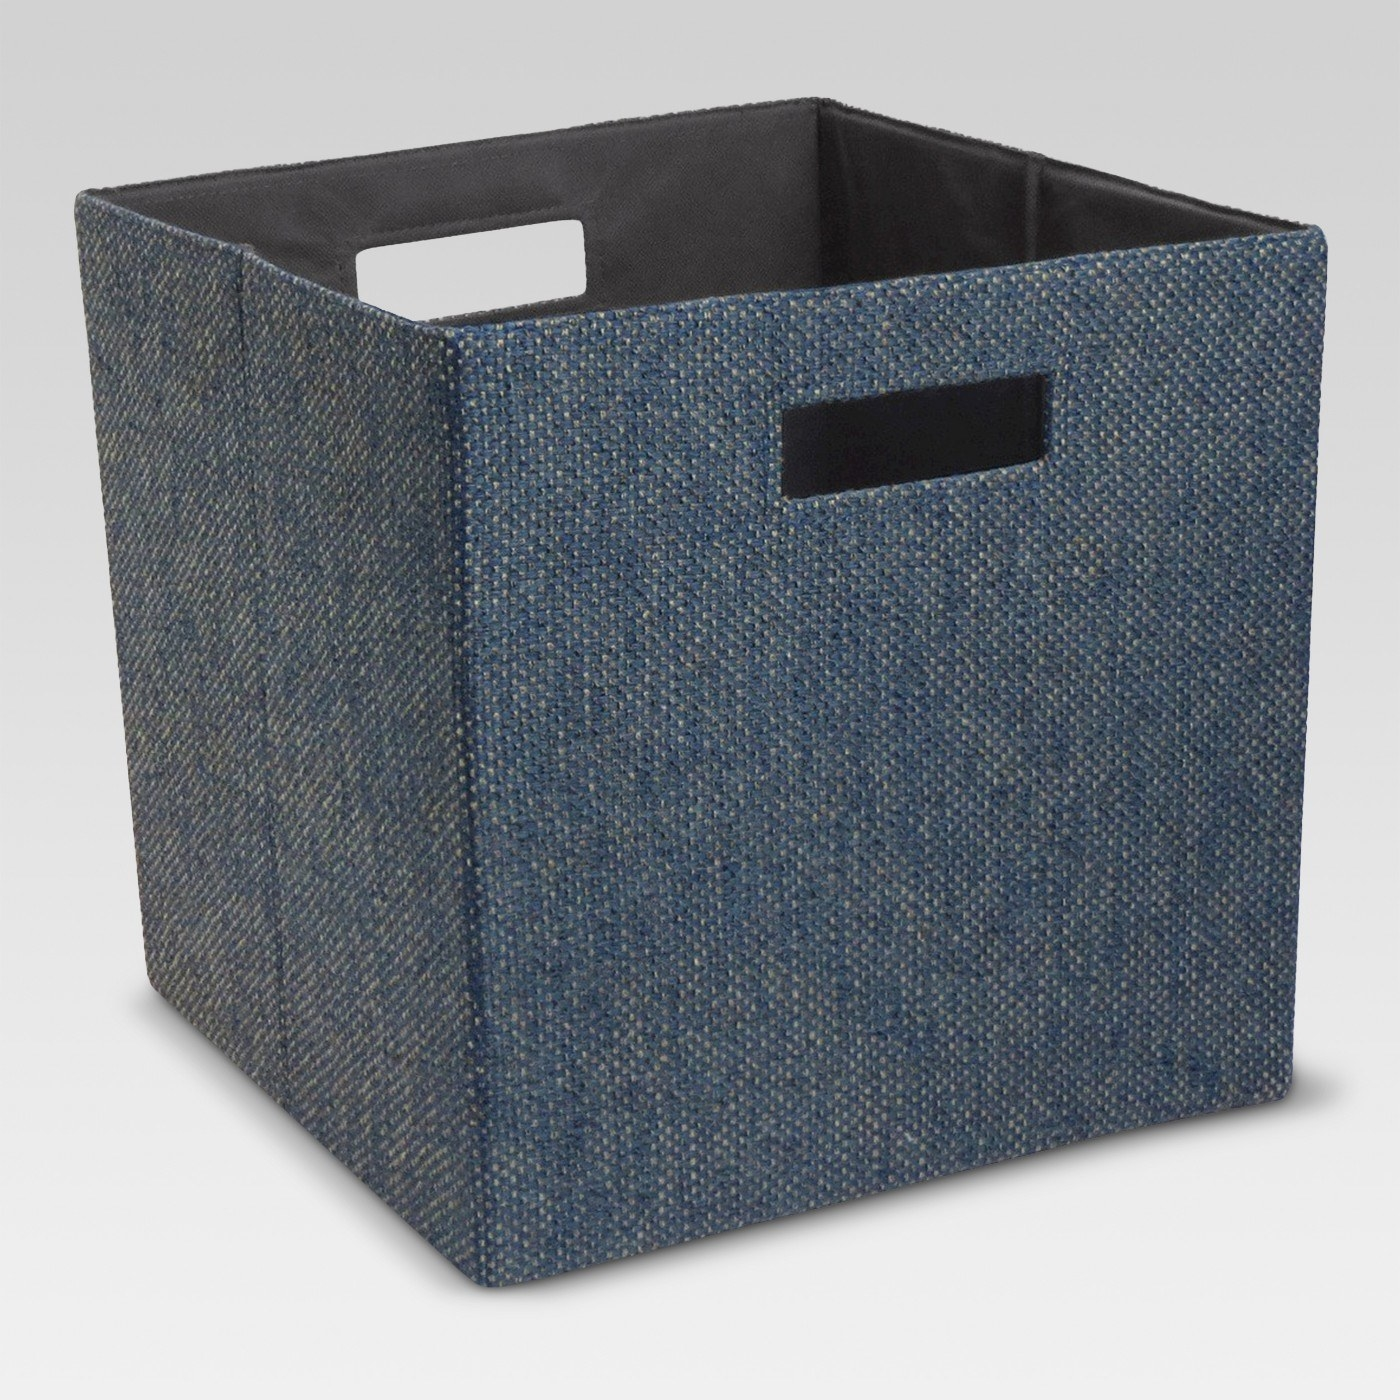 Fabric storage cube in blue